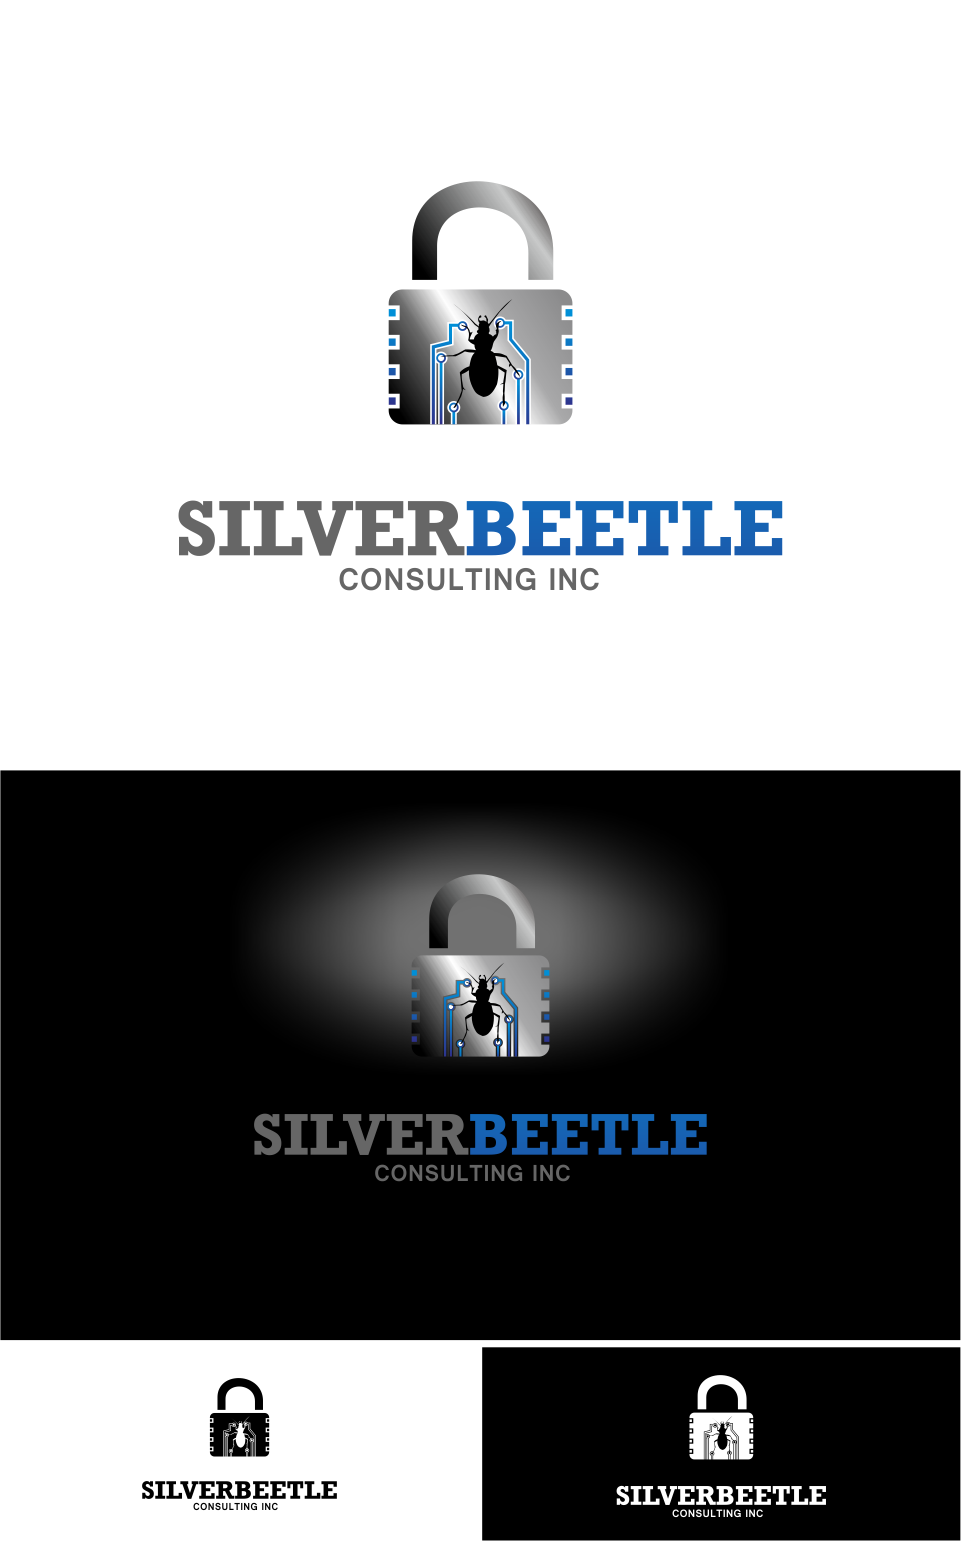 Logo Design by Mitchnick Sunardi - Entry No. 35 in the Logo Design Contest Silver Beetle Consulting Inc. Logo Design.